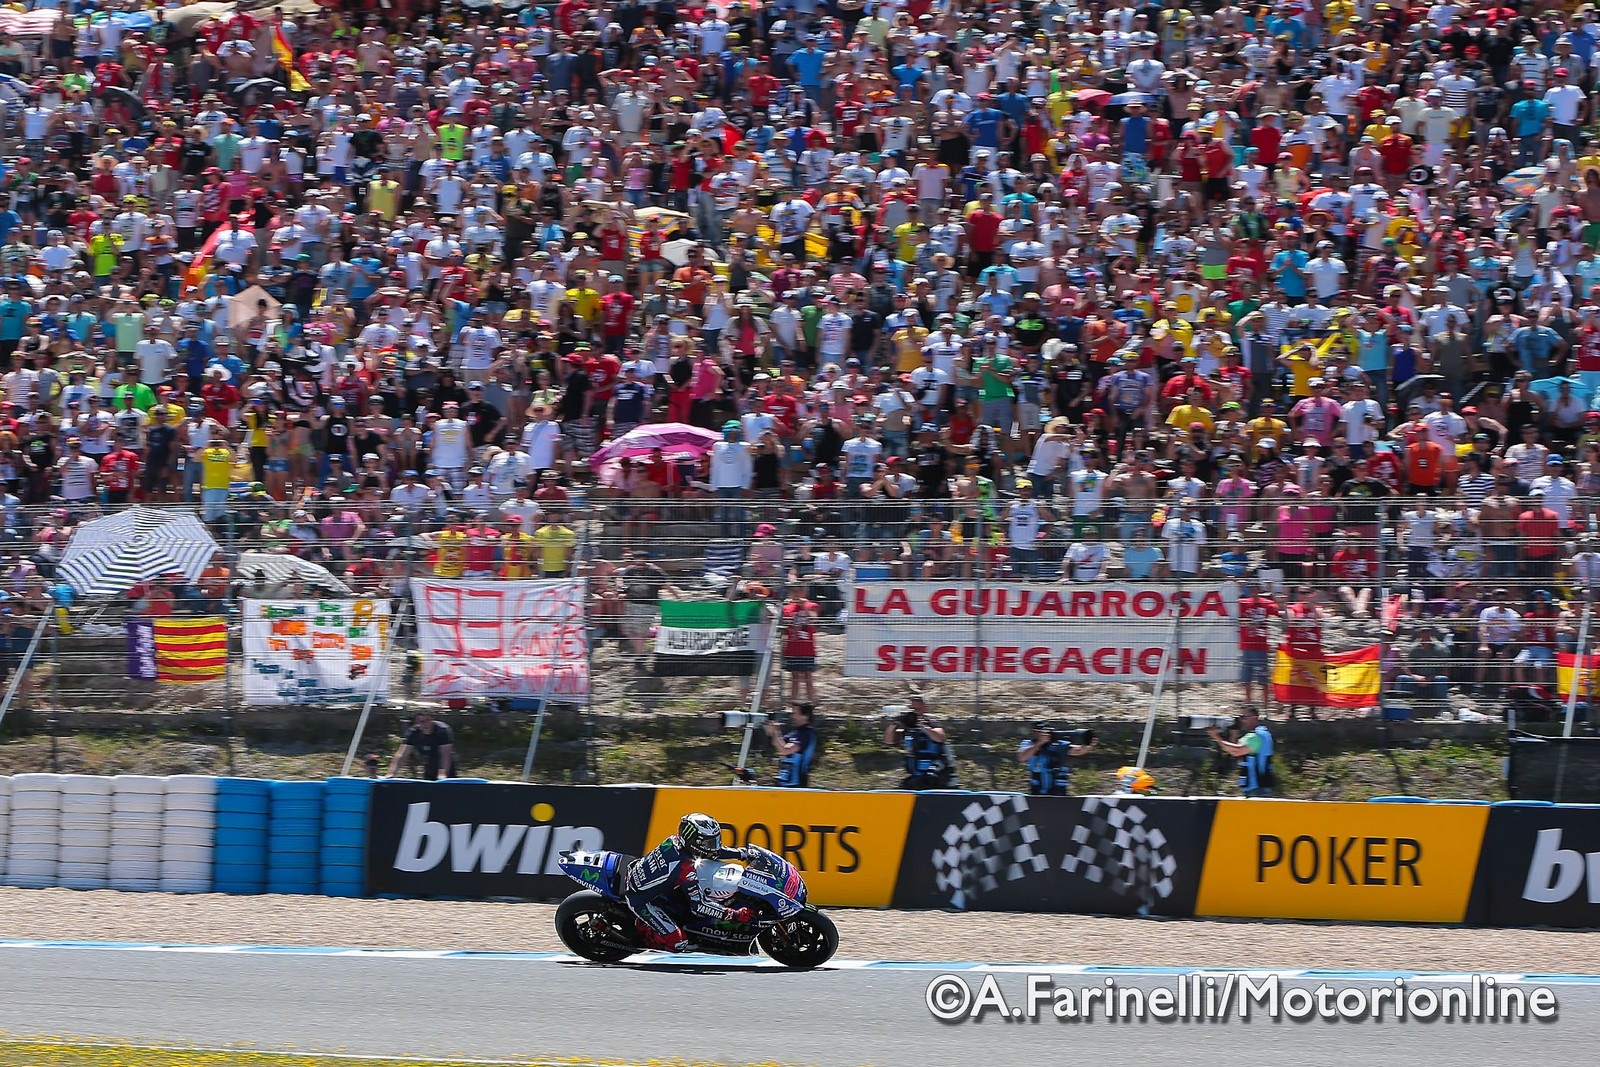 Notizie Motogp Austin 2014 | MotoGP 2017 Info, Video, Points Table